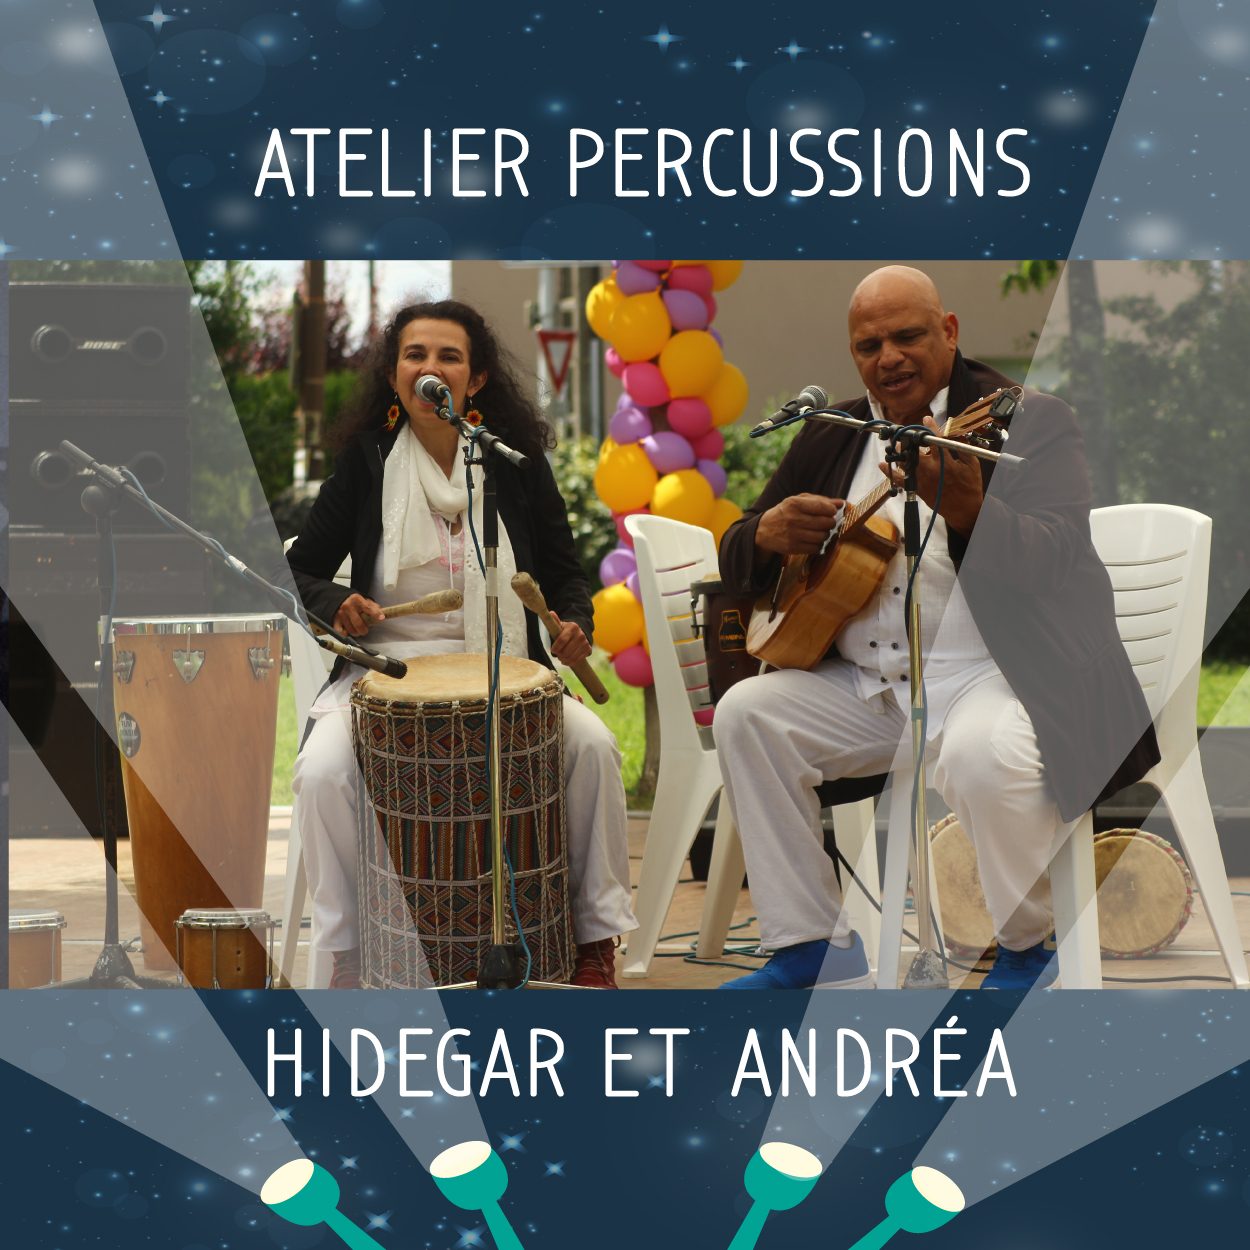 atelier percussions photo